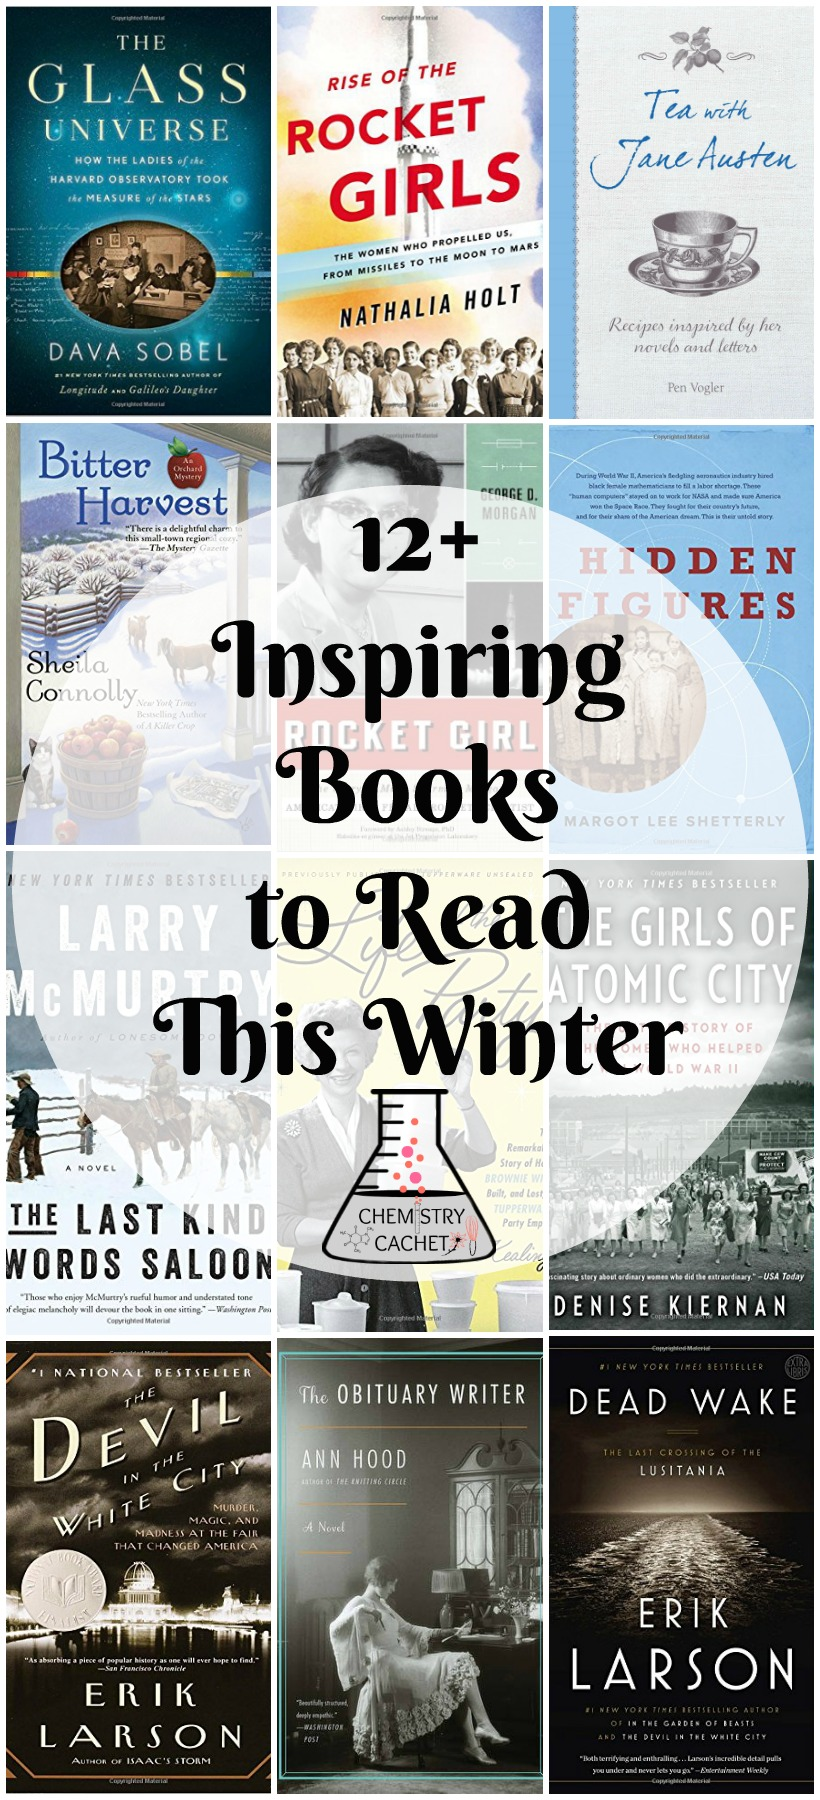 12+ Inspiring Books to Read this Winter. A mix of mystery, non-fiction, historical fiction, and even some recipes on chemistrycachet.com